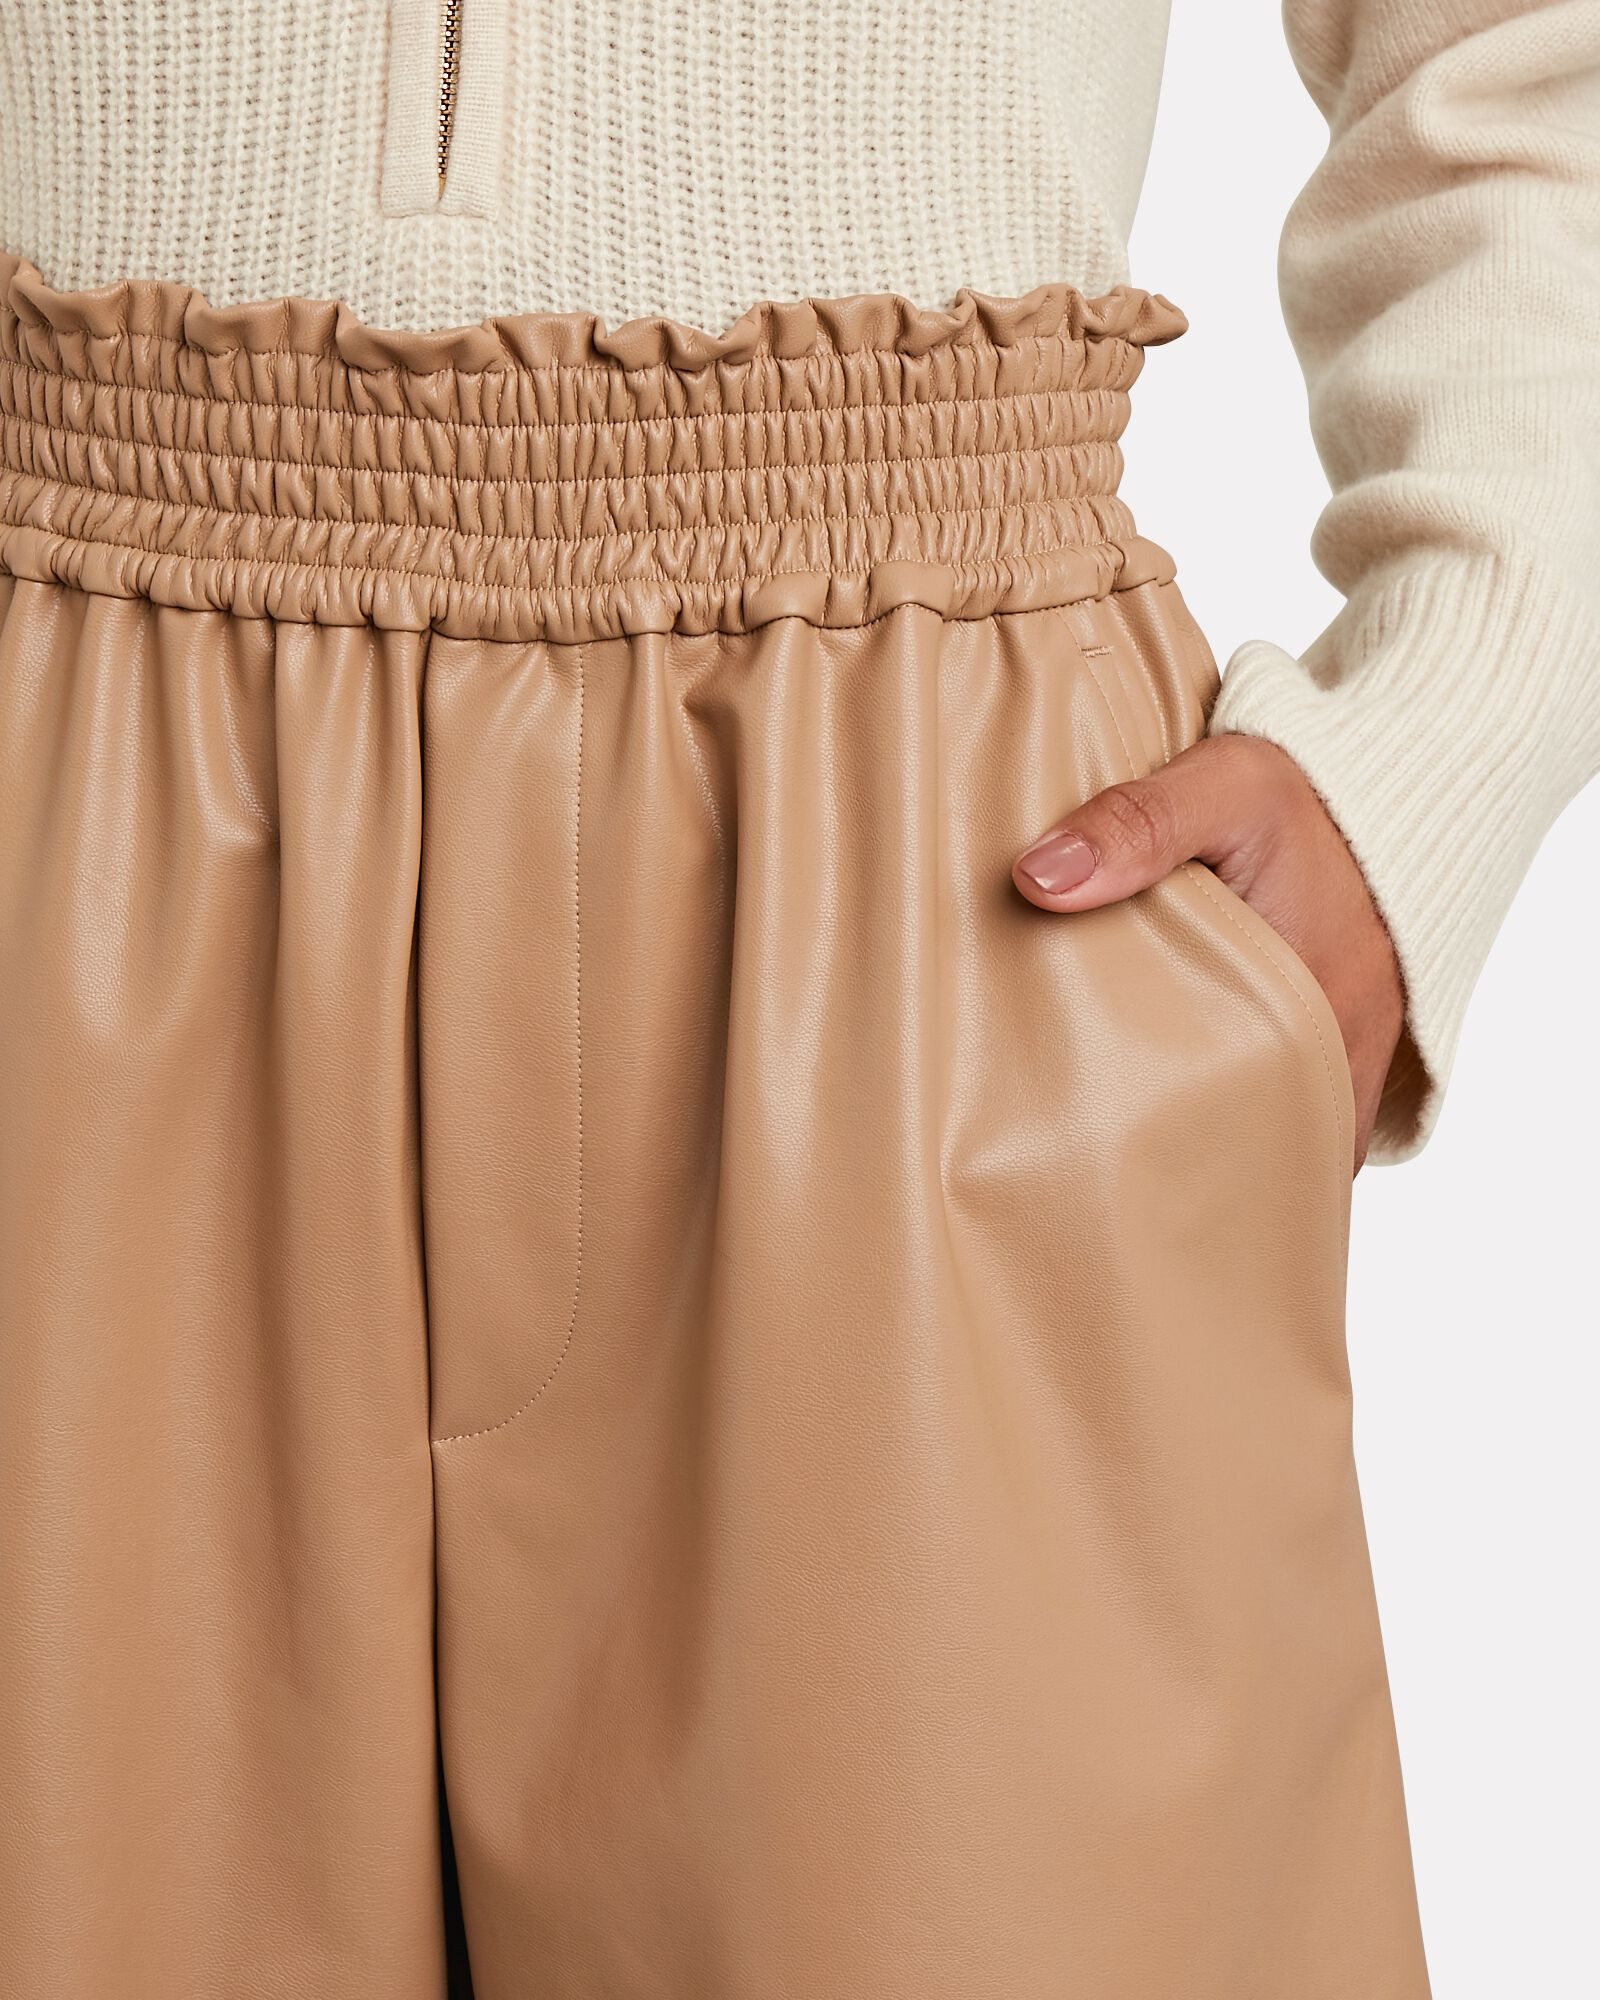 Kaleb Vegan Leather Shorts, BEIGE, hi-res